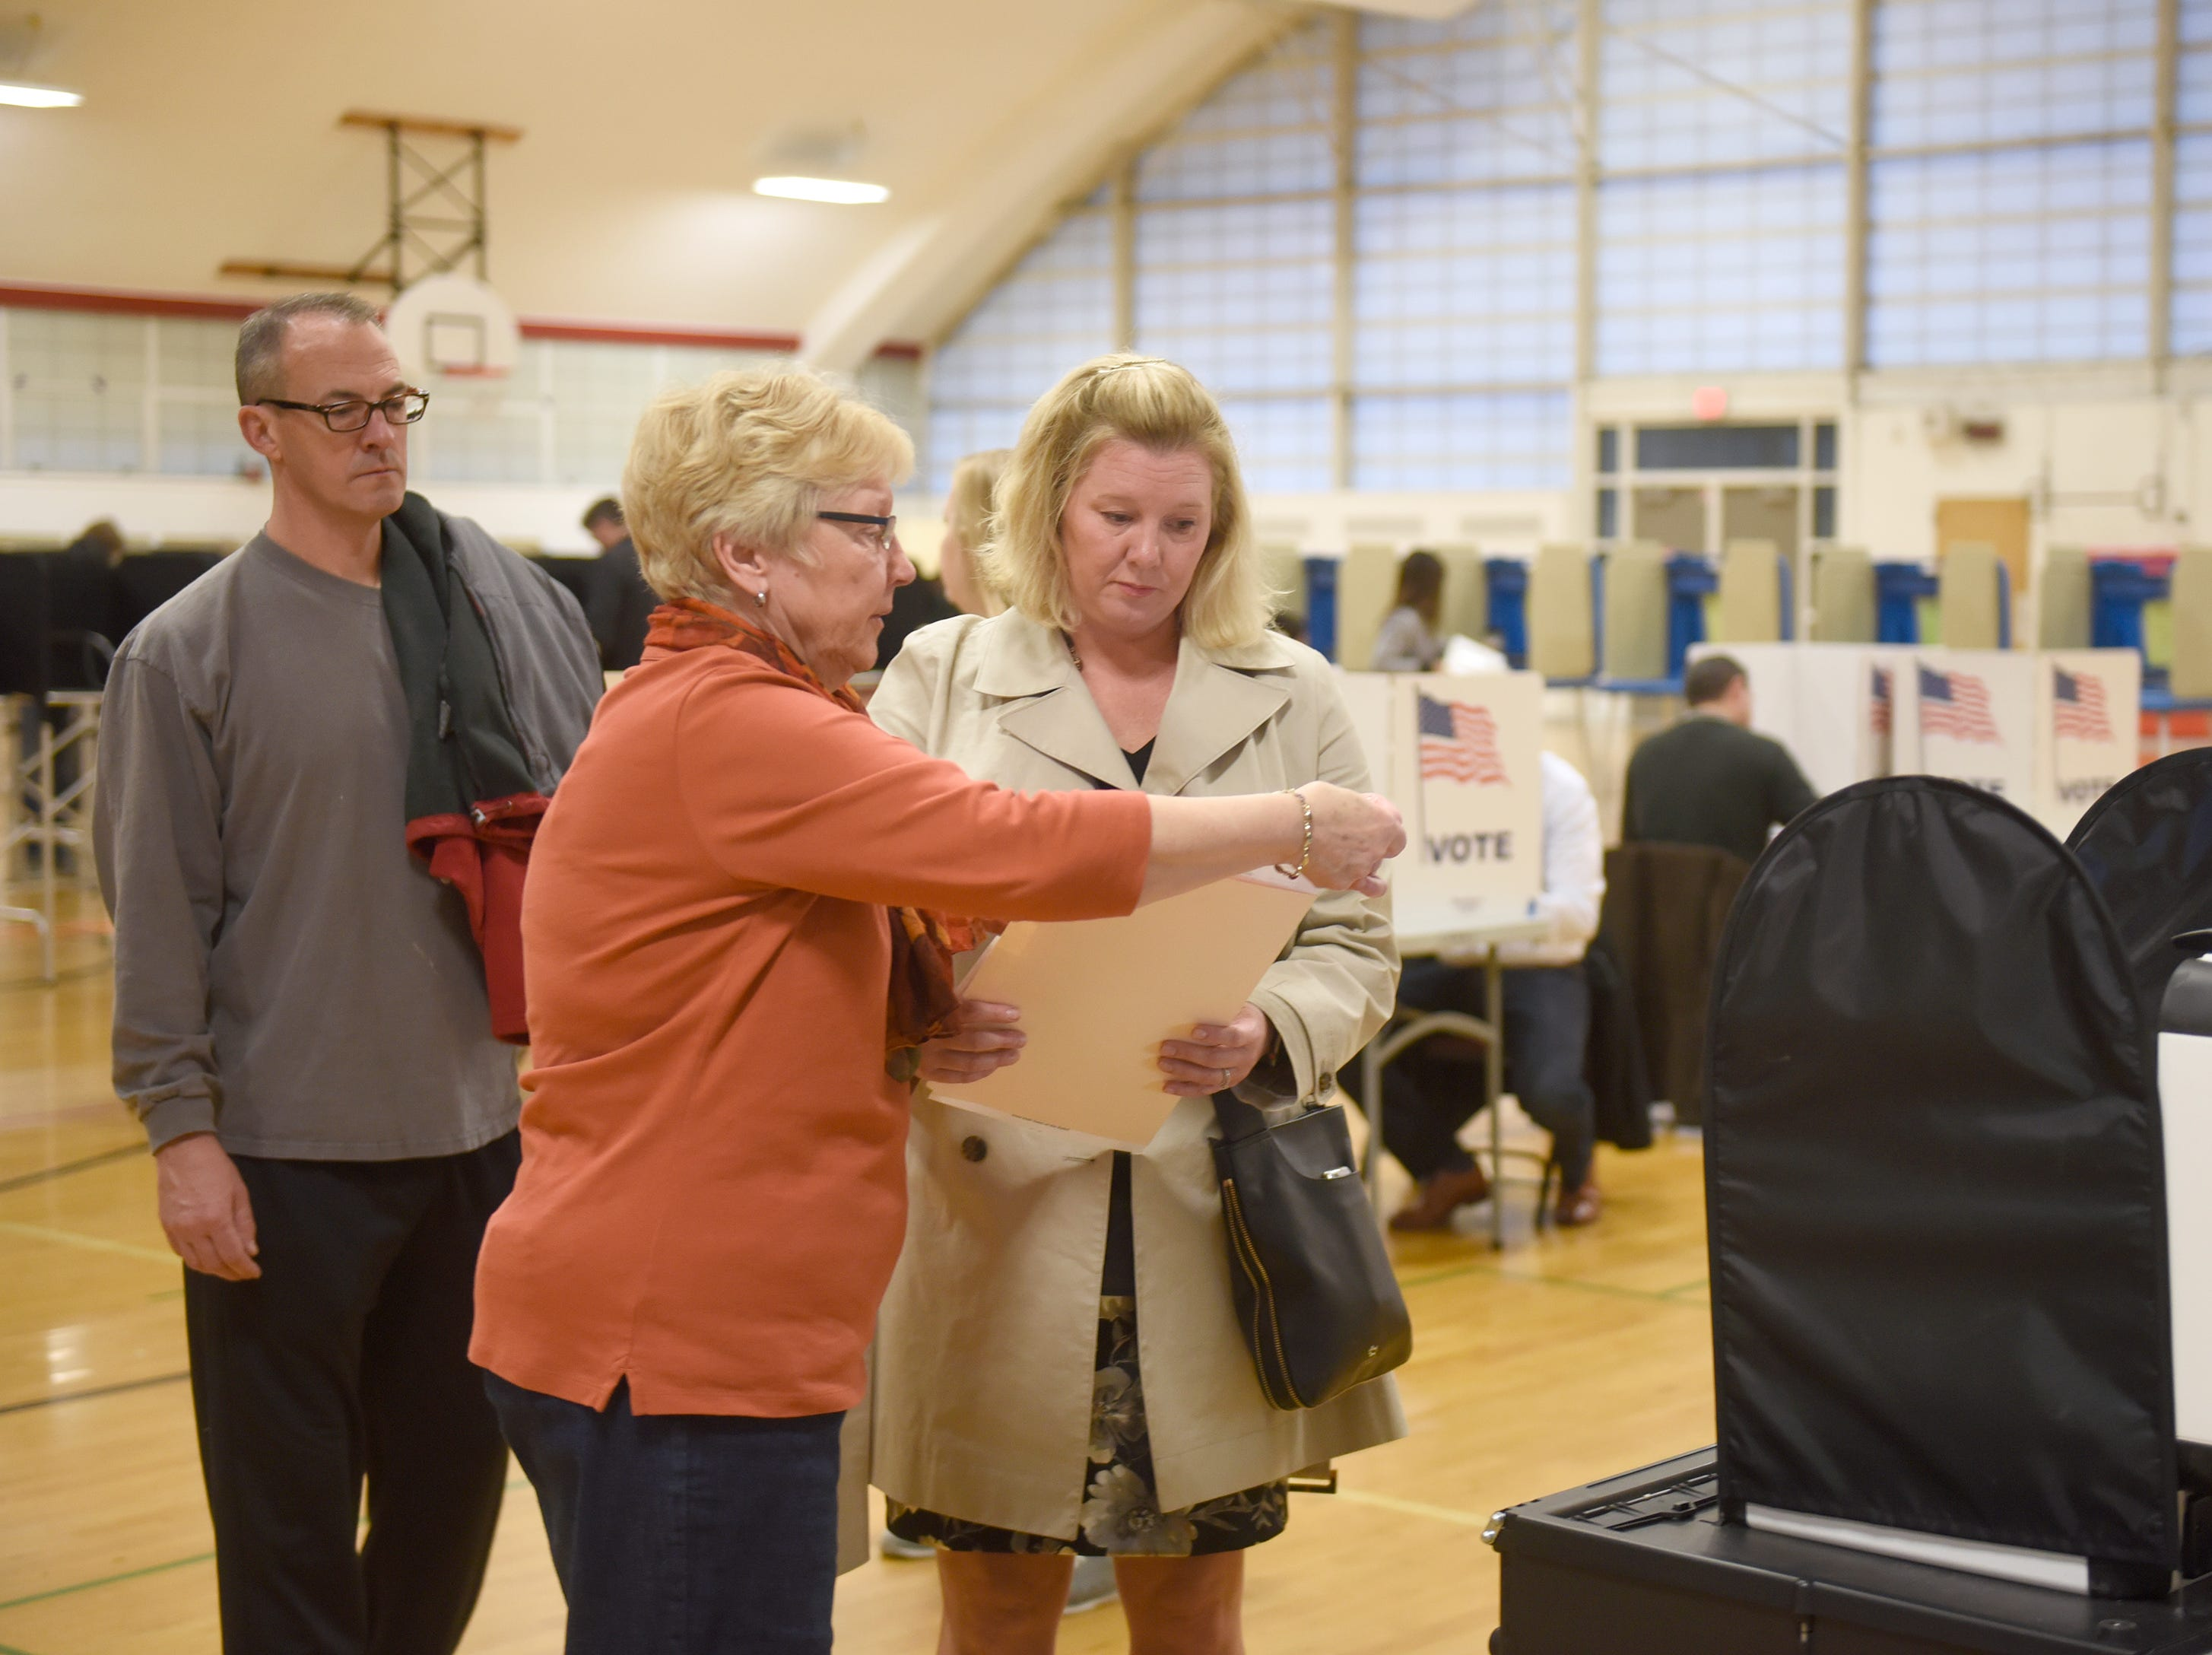 Election worker Marty Logue helps Jeffery Clarke (left) and his wife Christine Whitaker-Clarke prepare to feed their ballots into the machine on election day Nov. 6, 2018 at Derby Middle School in Birmingham.